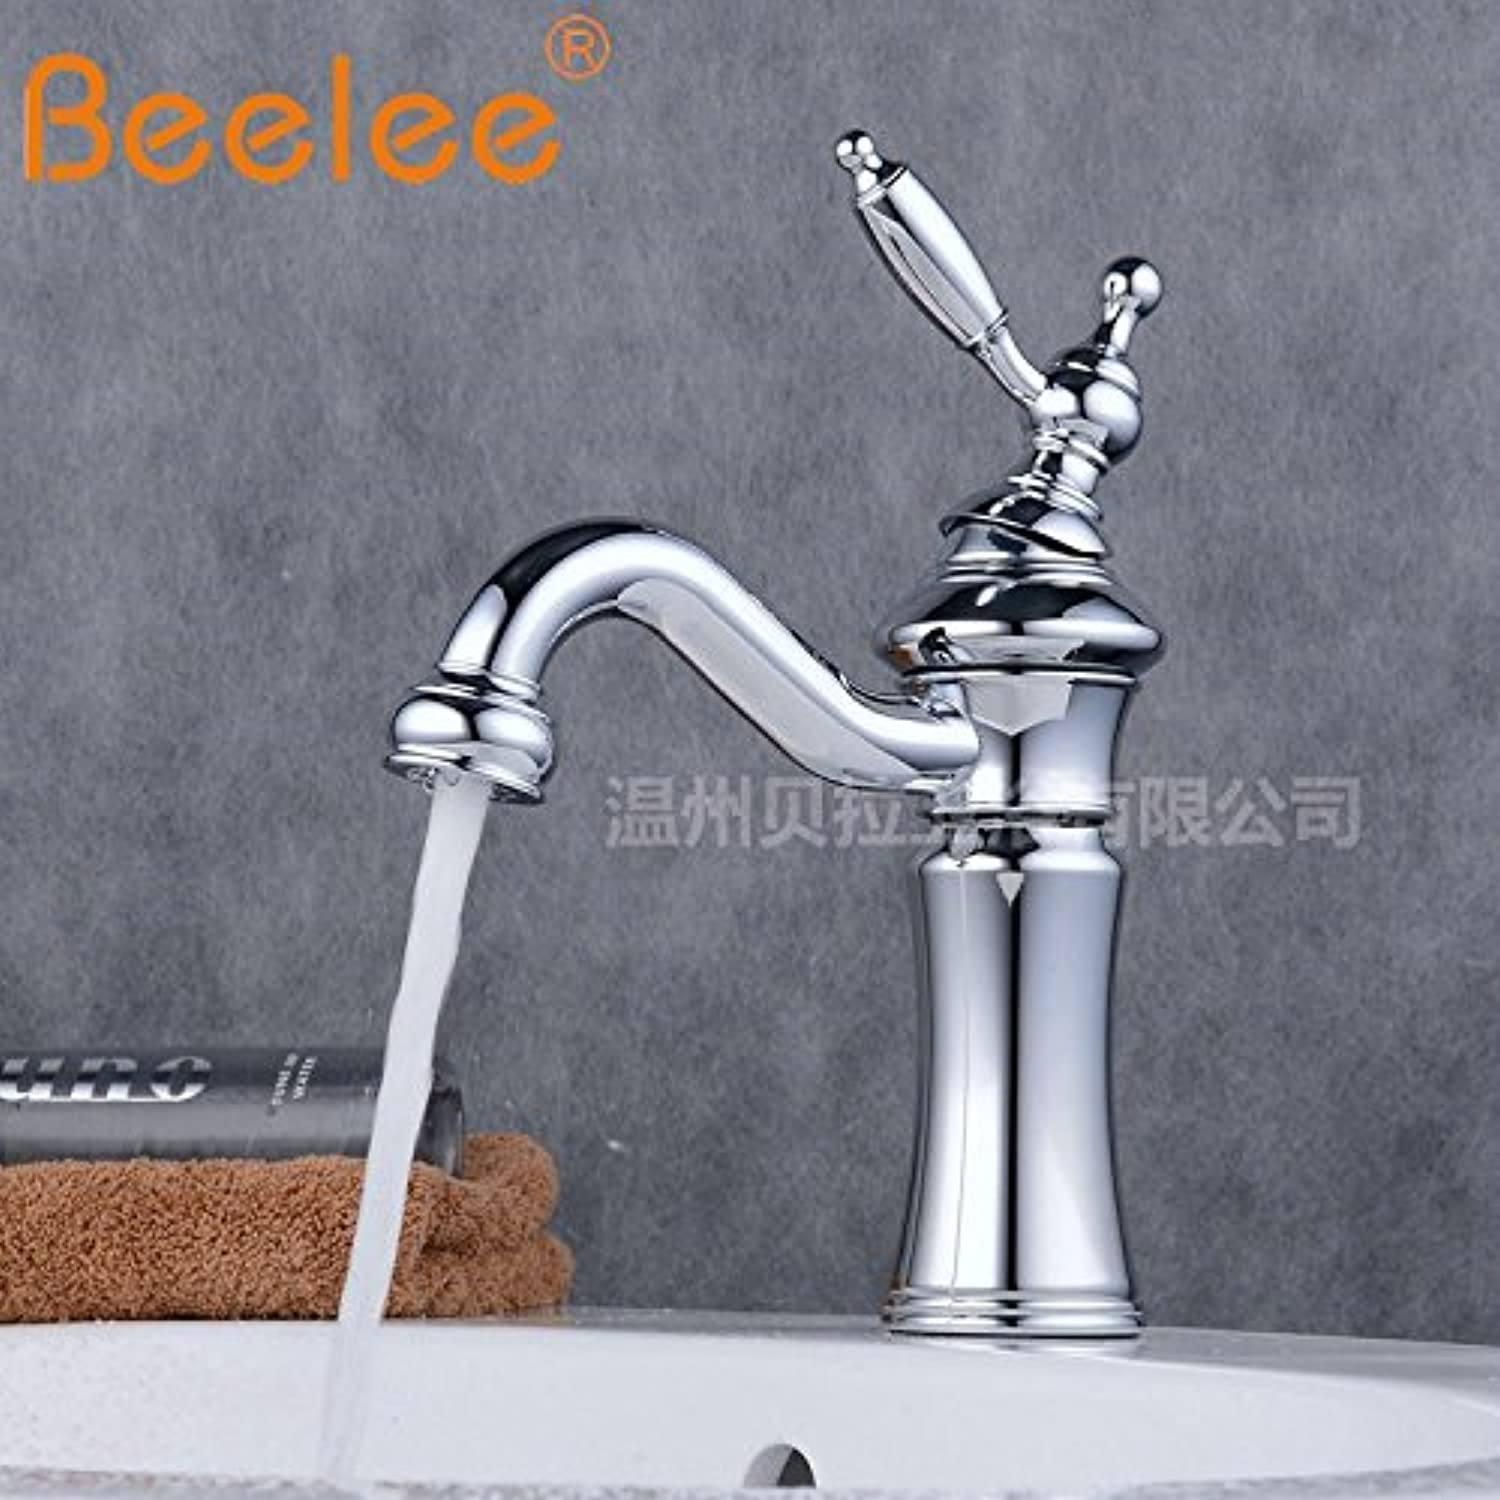 Pengei Tap Basin Mixer Kitchen Sink Mixer Faucet All Copper Single Hole Black Bronze